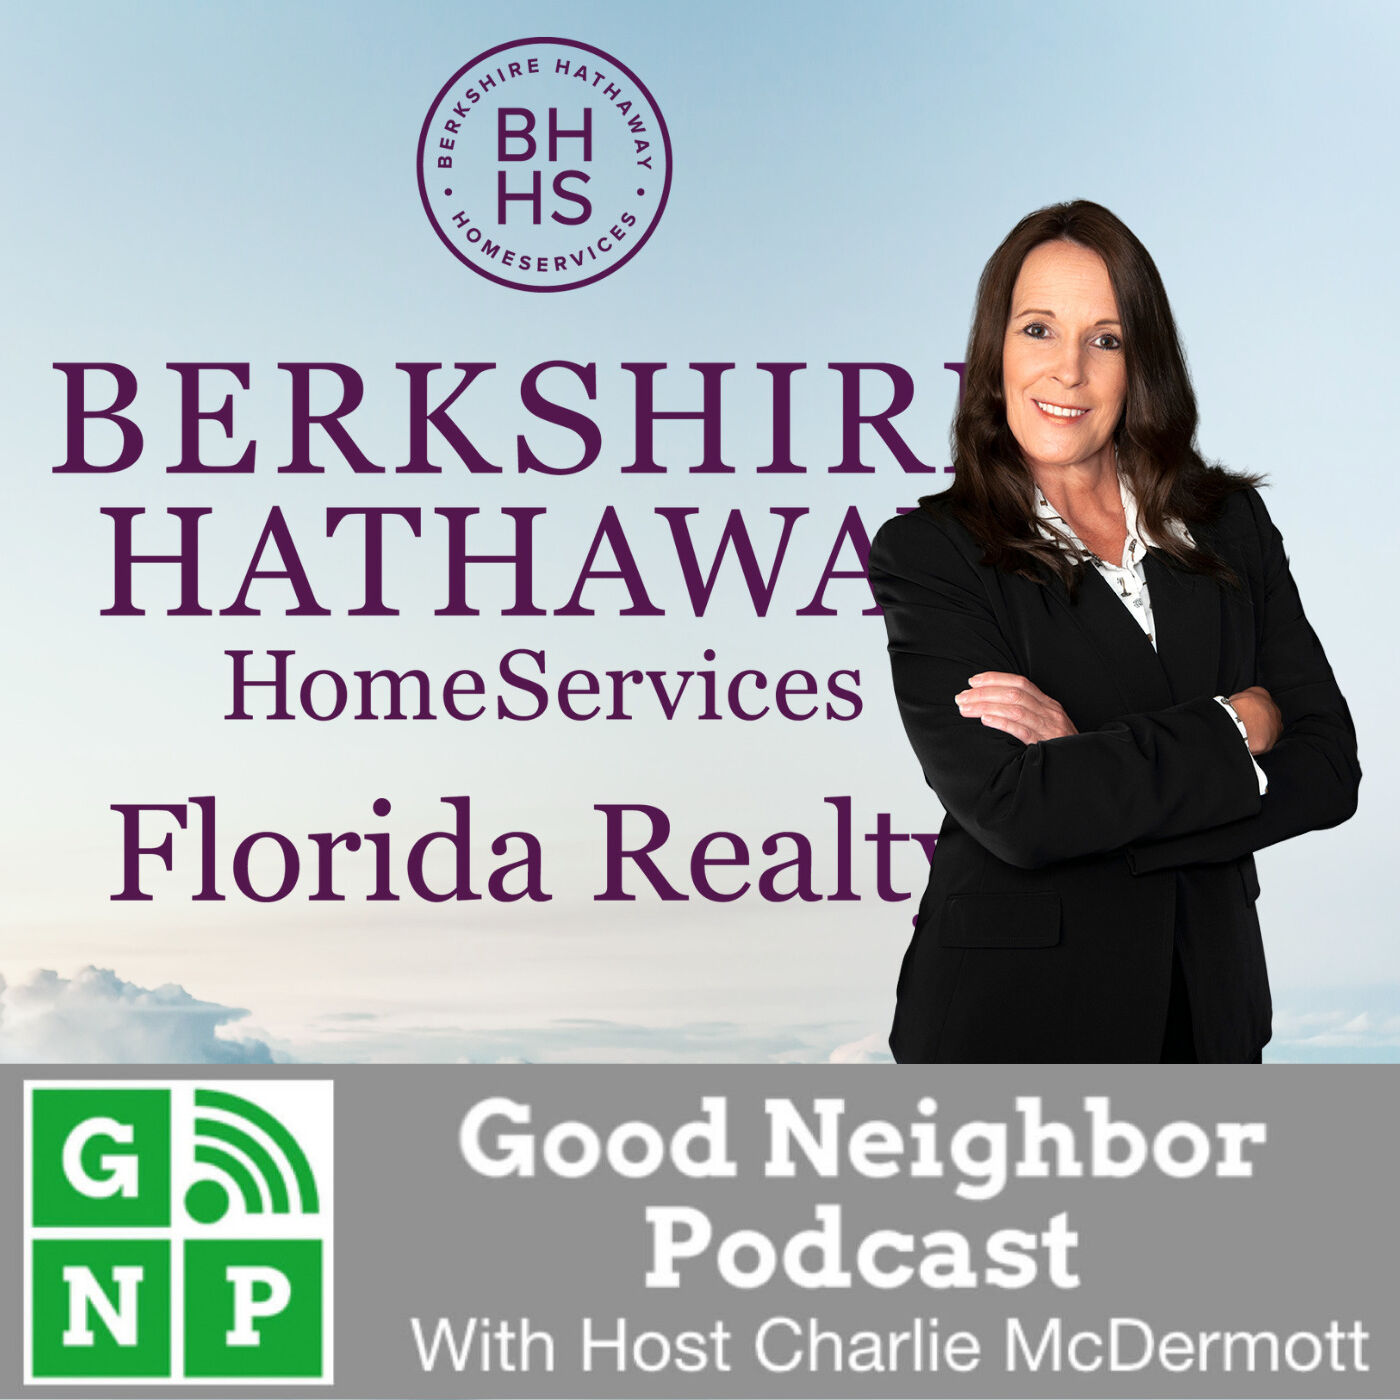 EP #492: Berkshire Hathaway Home Services with DeAnn Suchy